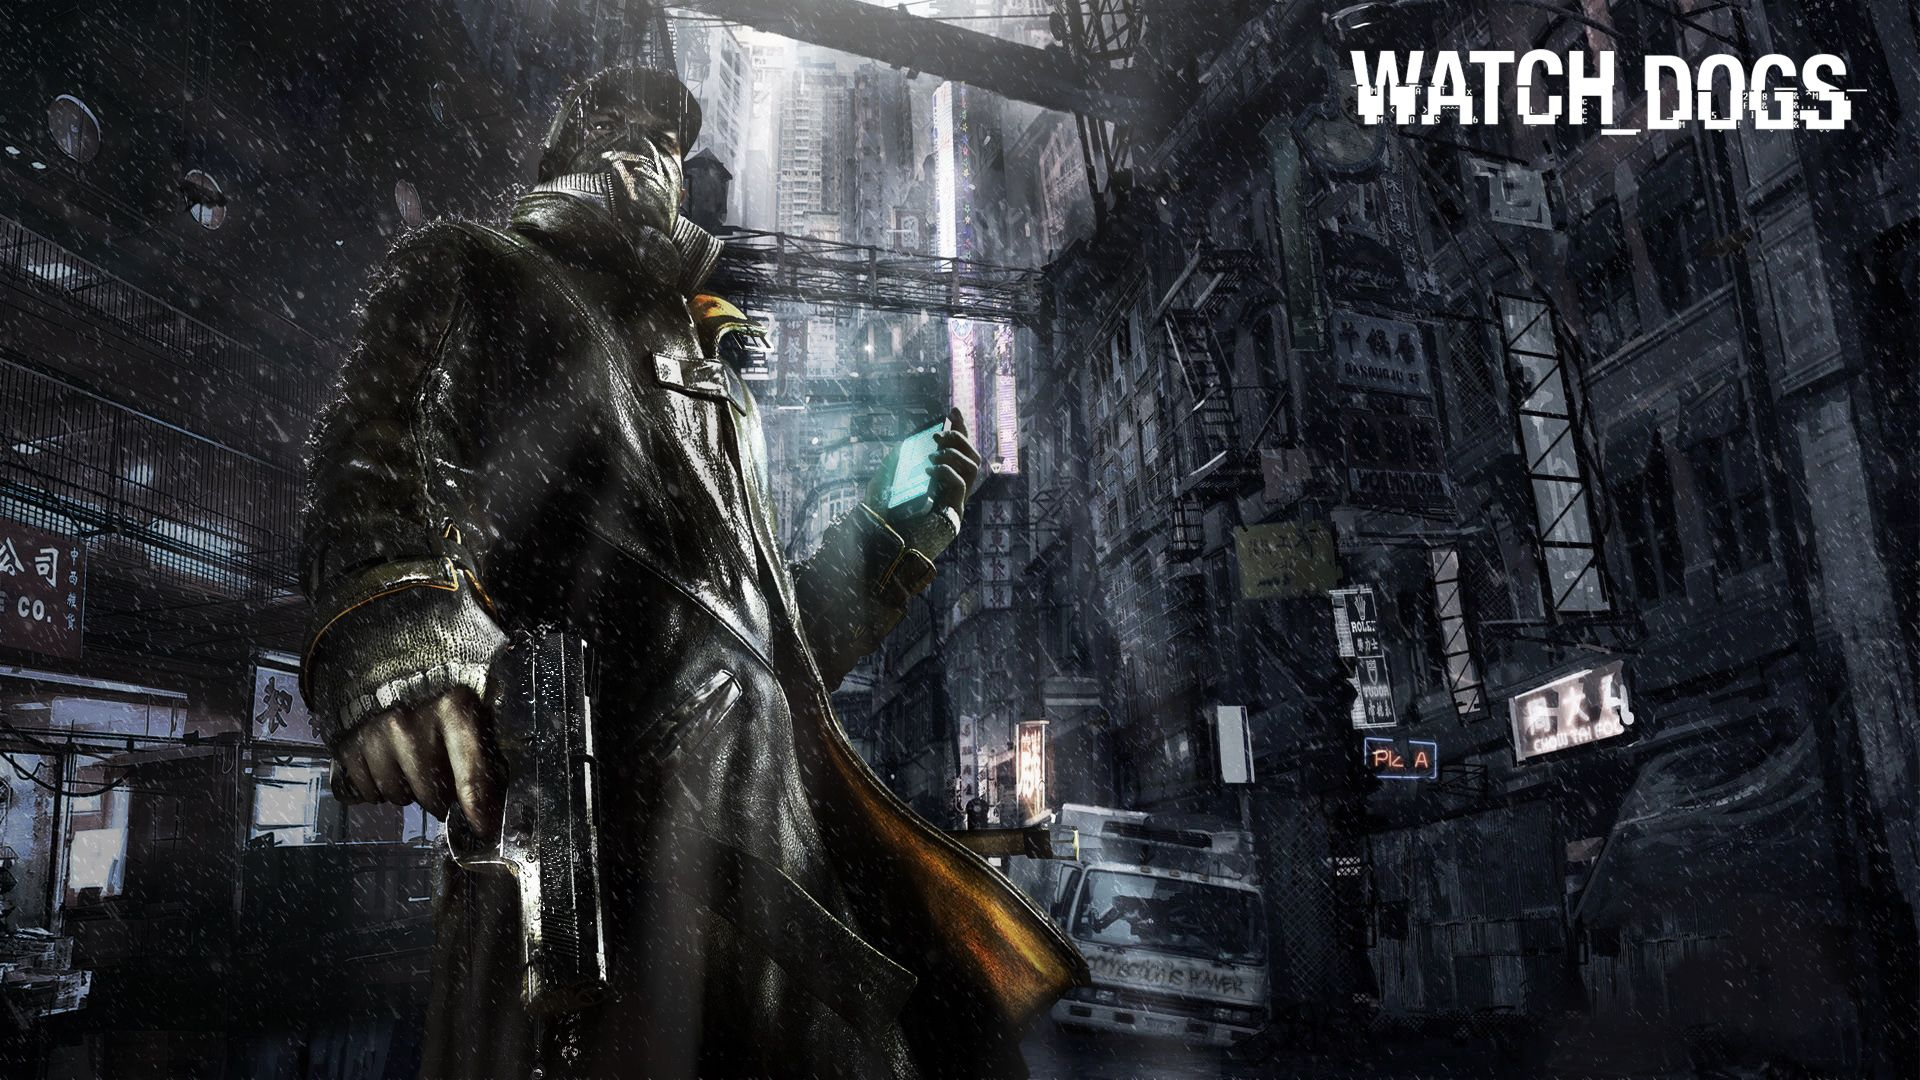 Watch Dogs Wallpapers Top Free Watch Dogs Backgrounds Wallpaperaccess